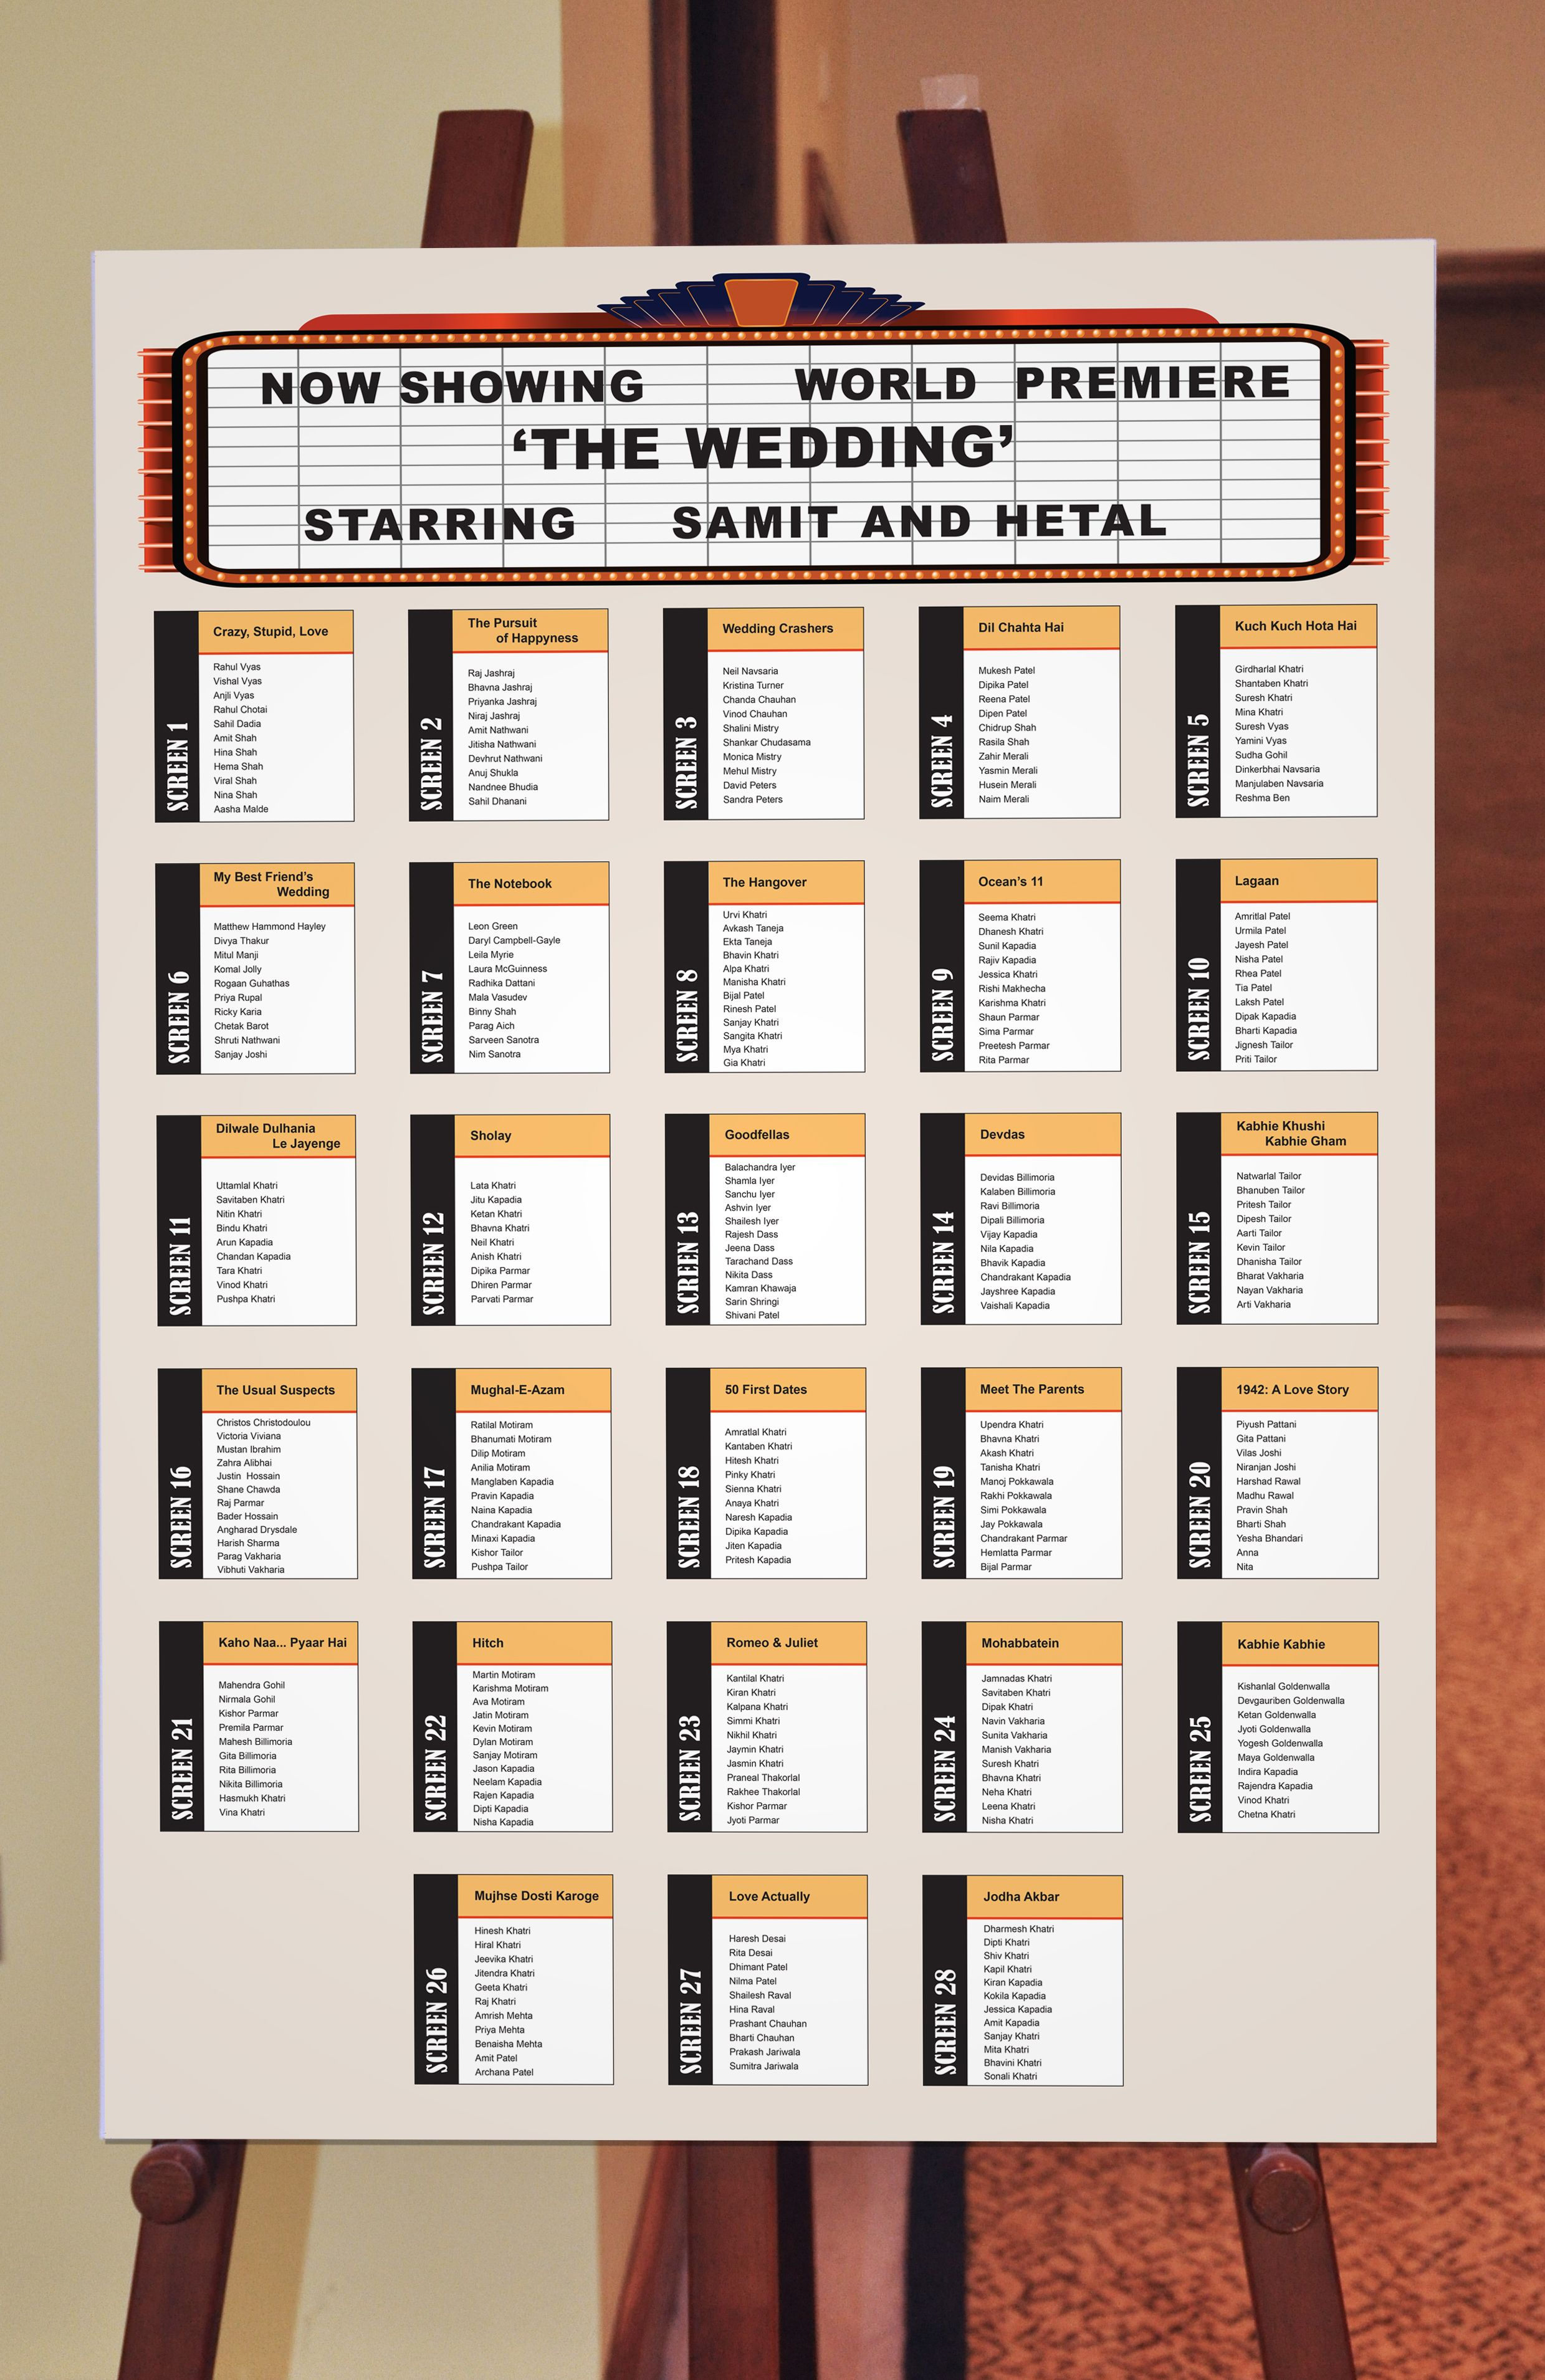 Film titles about weddings?